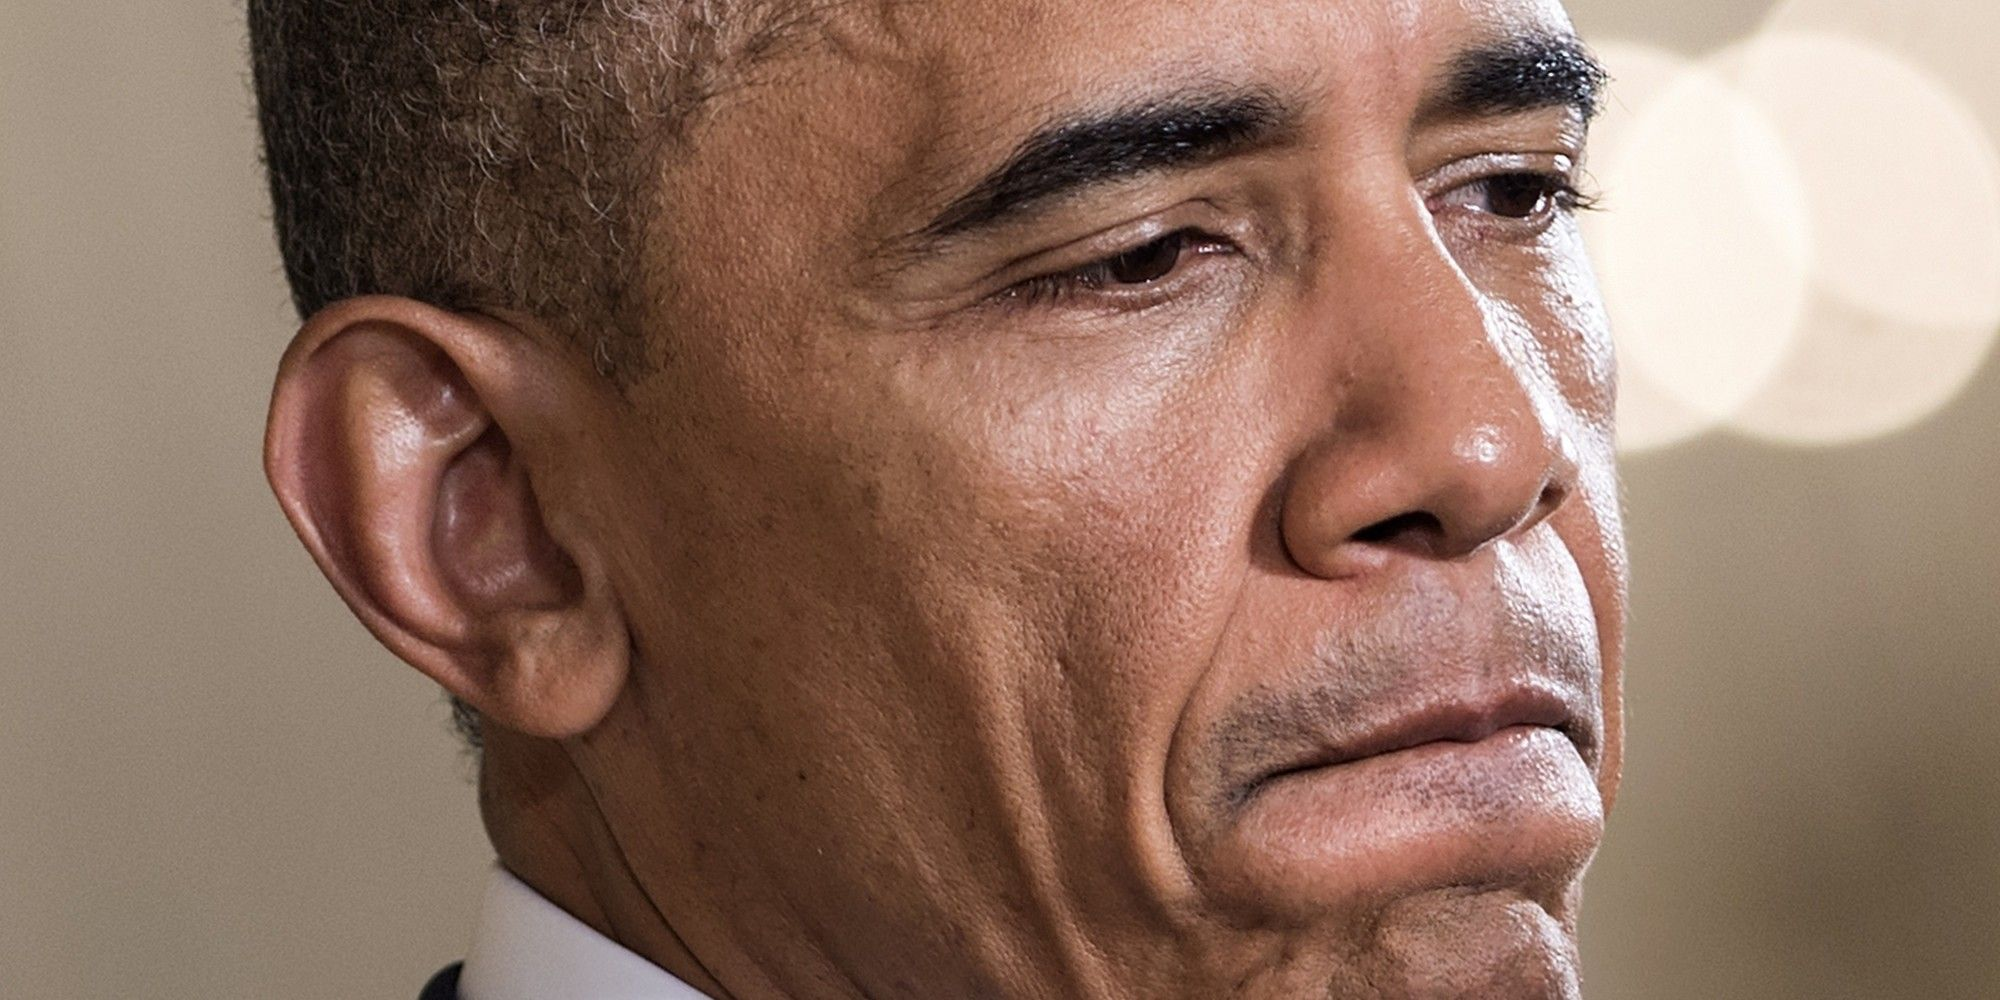 As President Barack Obama prepares to announce an executive action on Thursday that will reportedly offer deportation relief to millions of undocumented immigrants, opponents are crying foul. To understand why advocates have pressed so hard for refor...